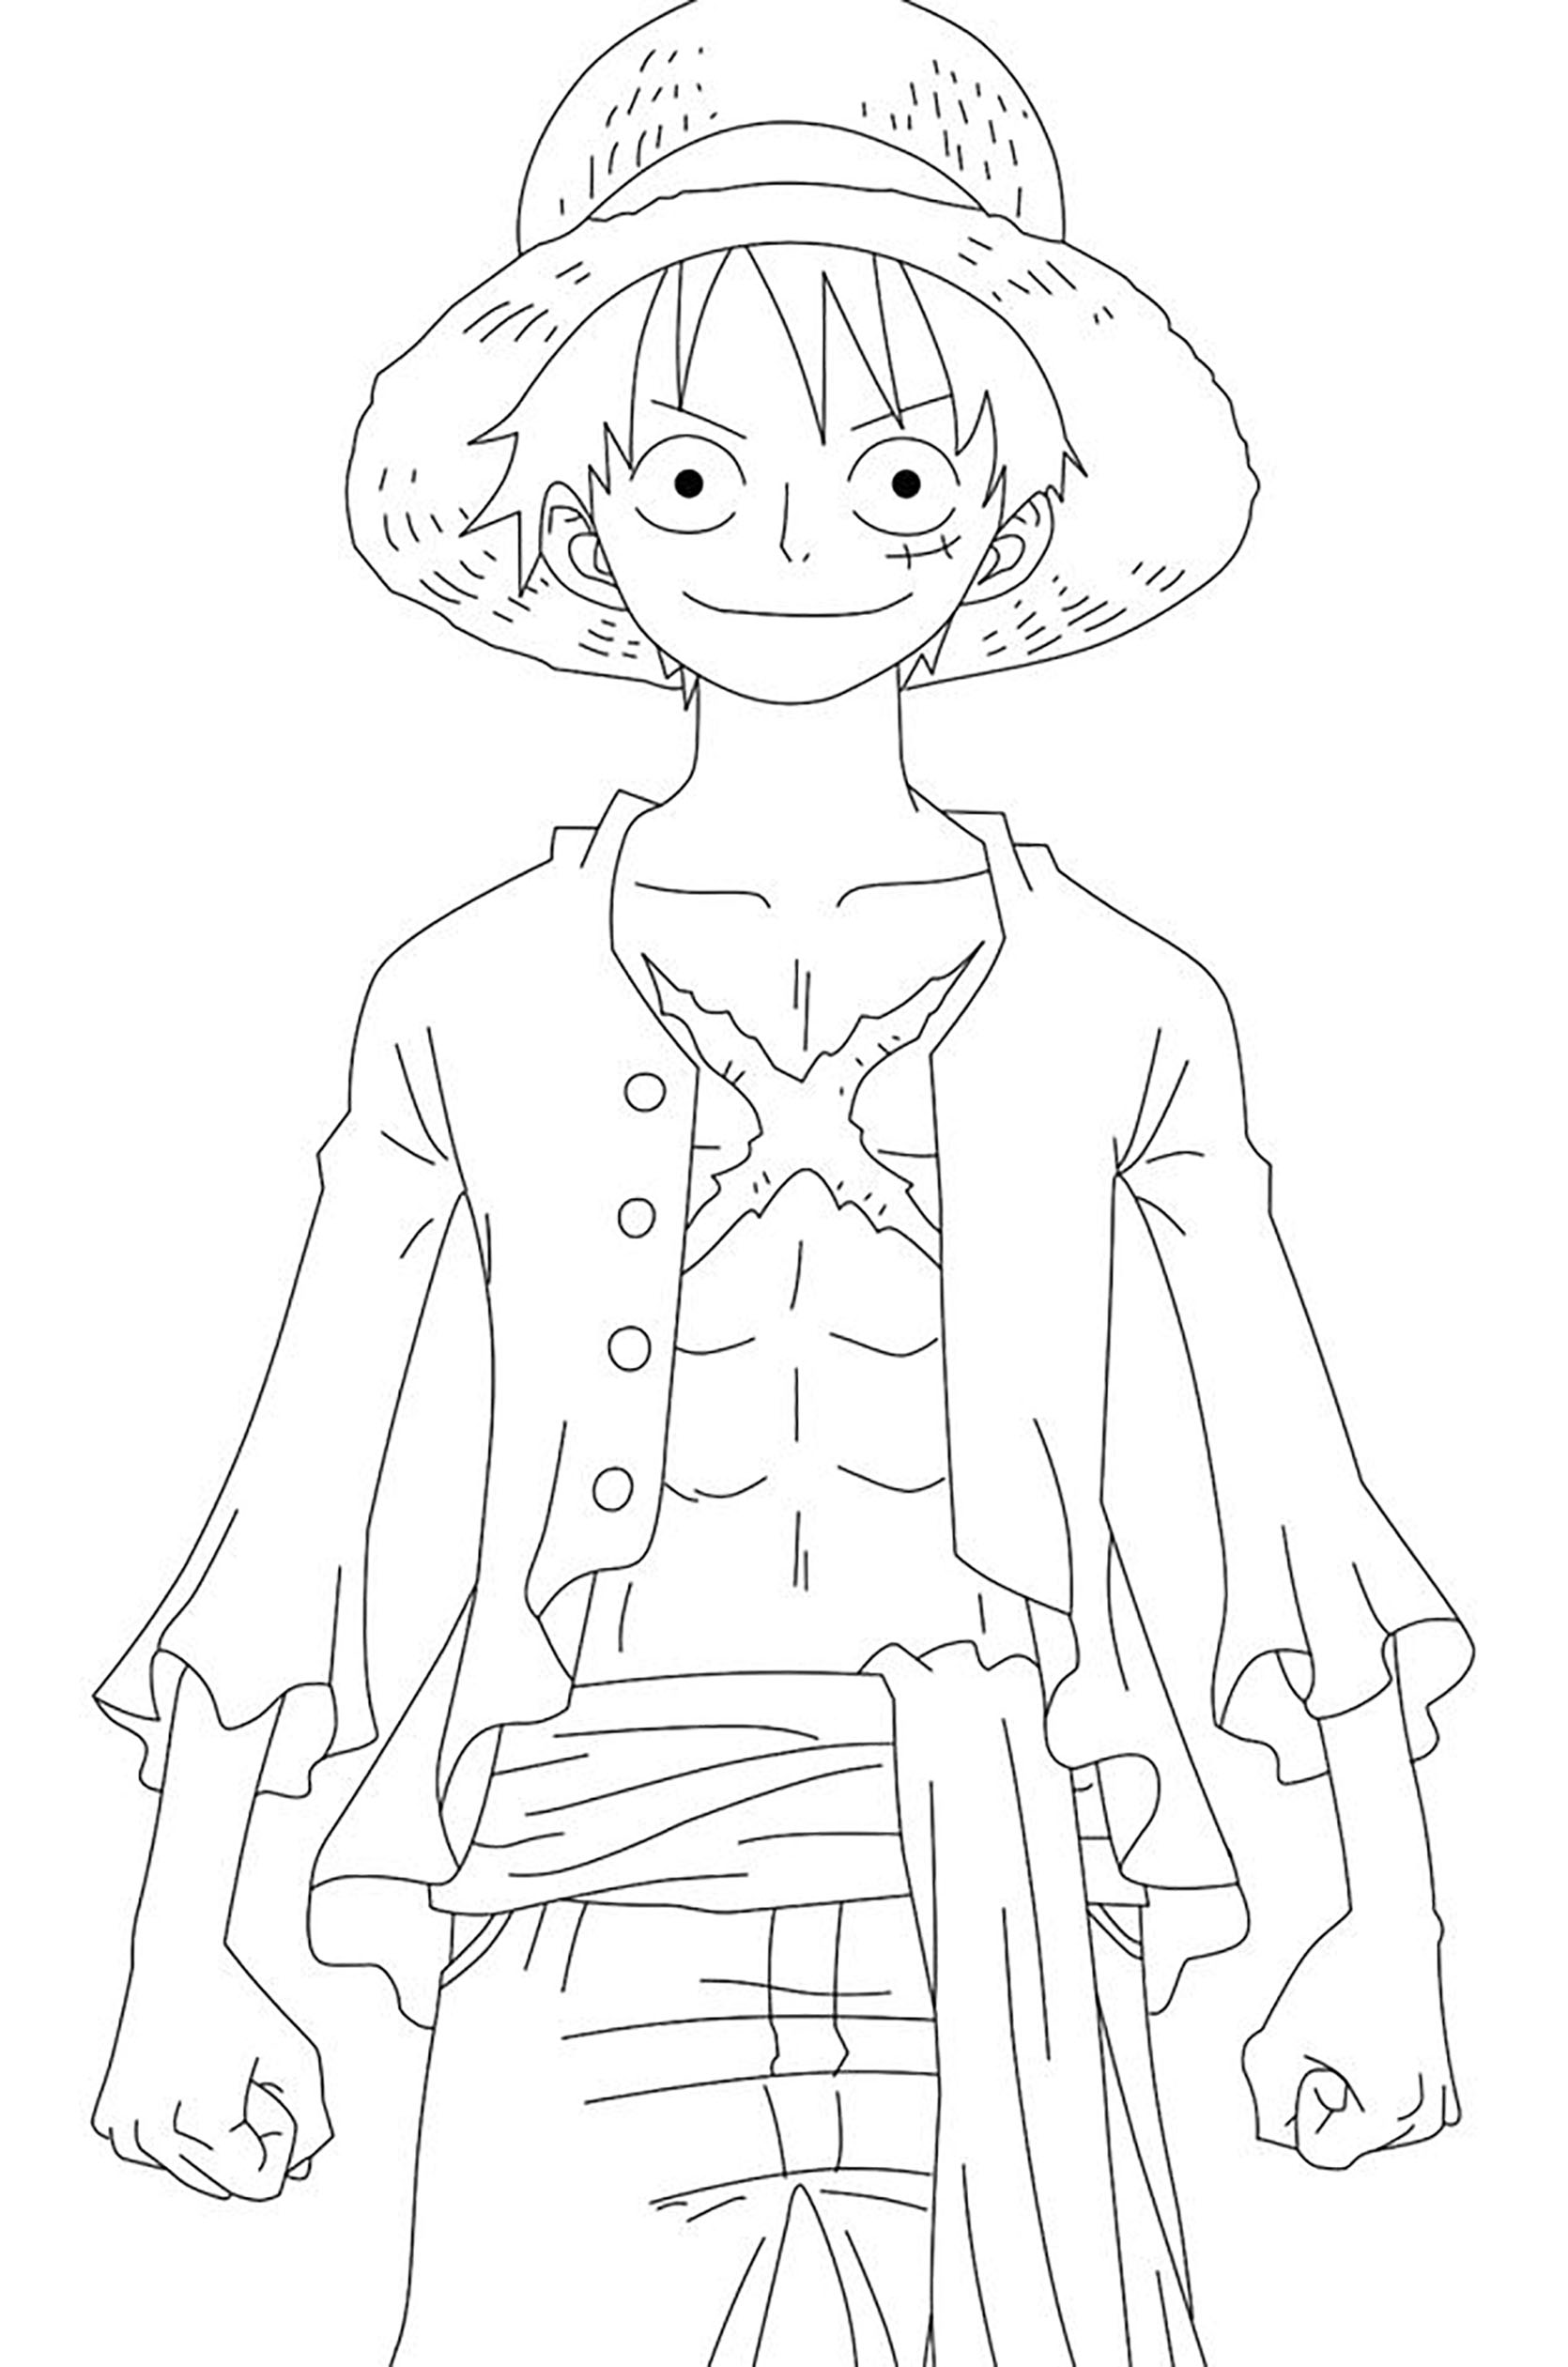 Free One Piece coloring page to download